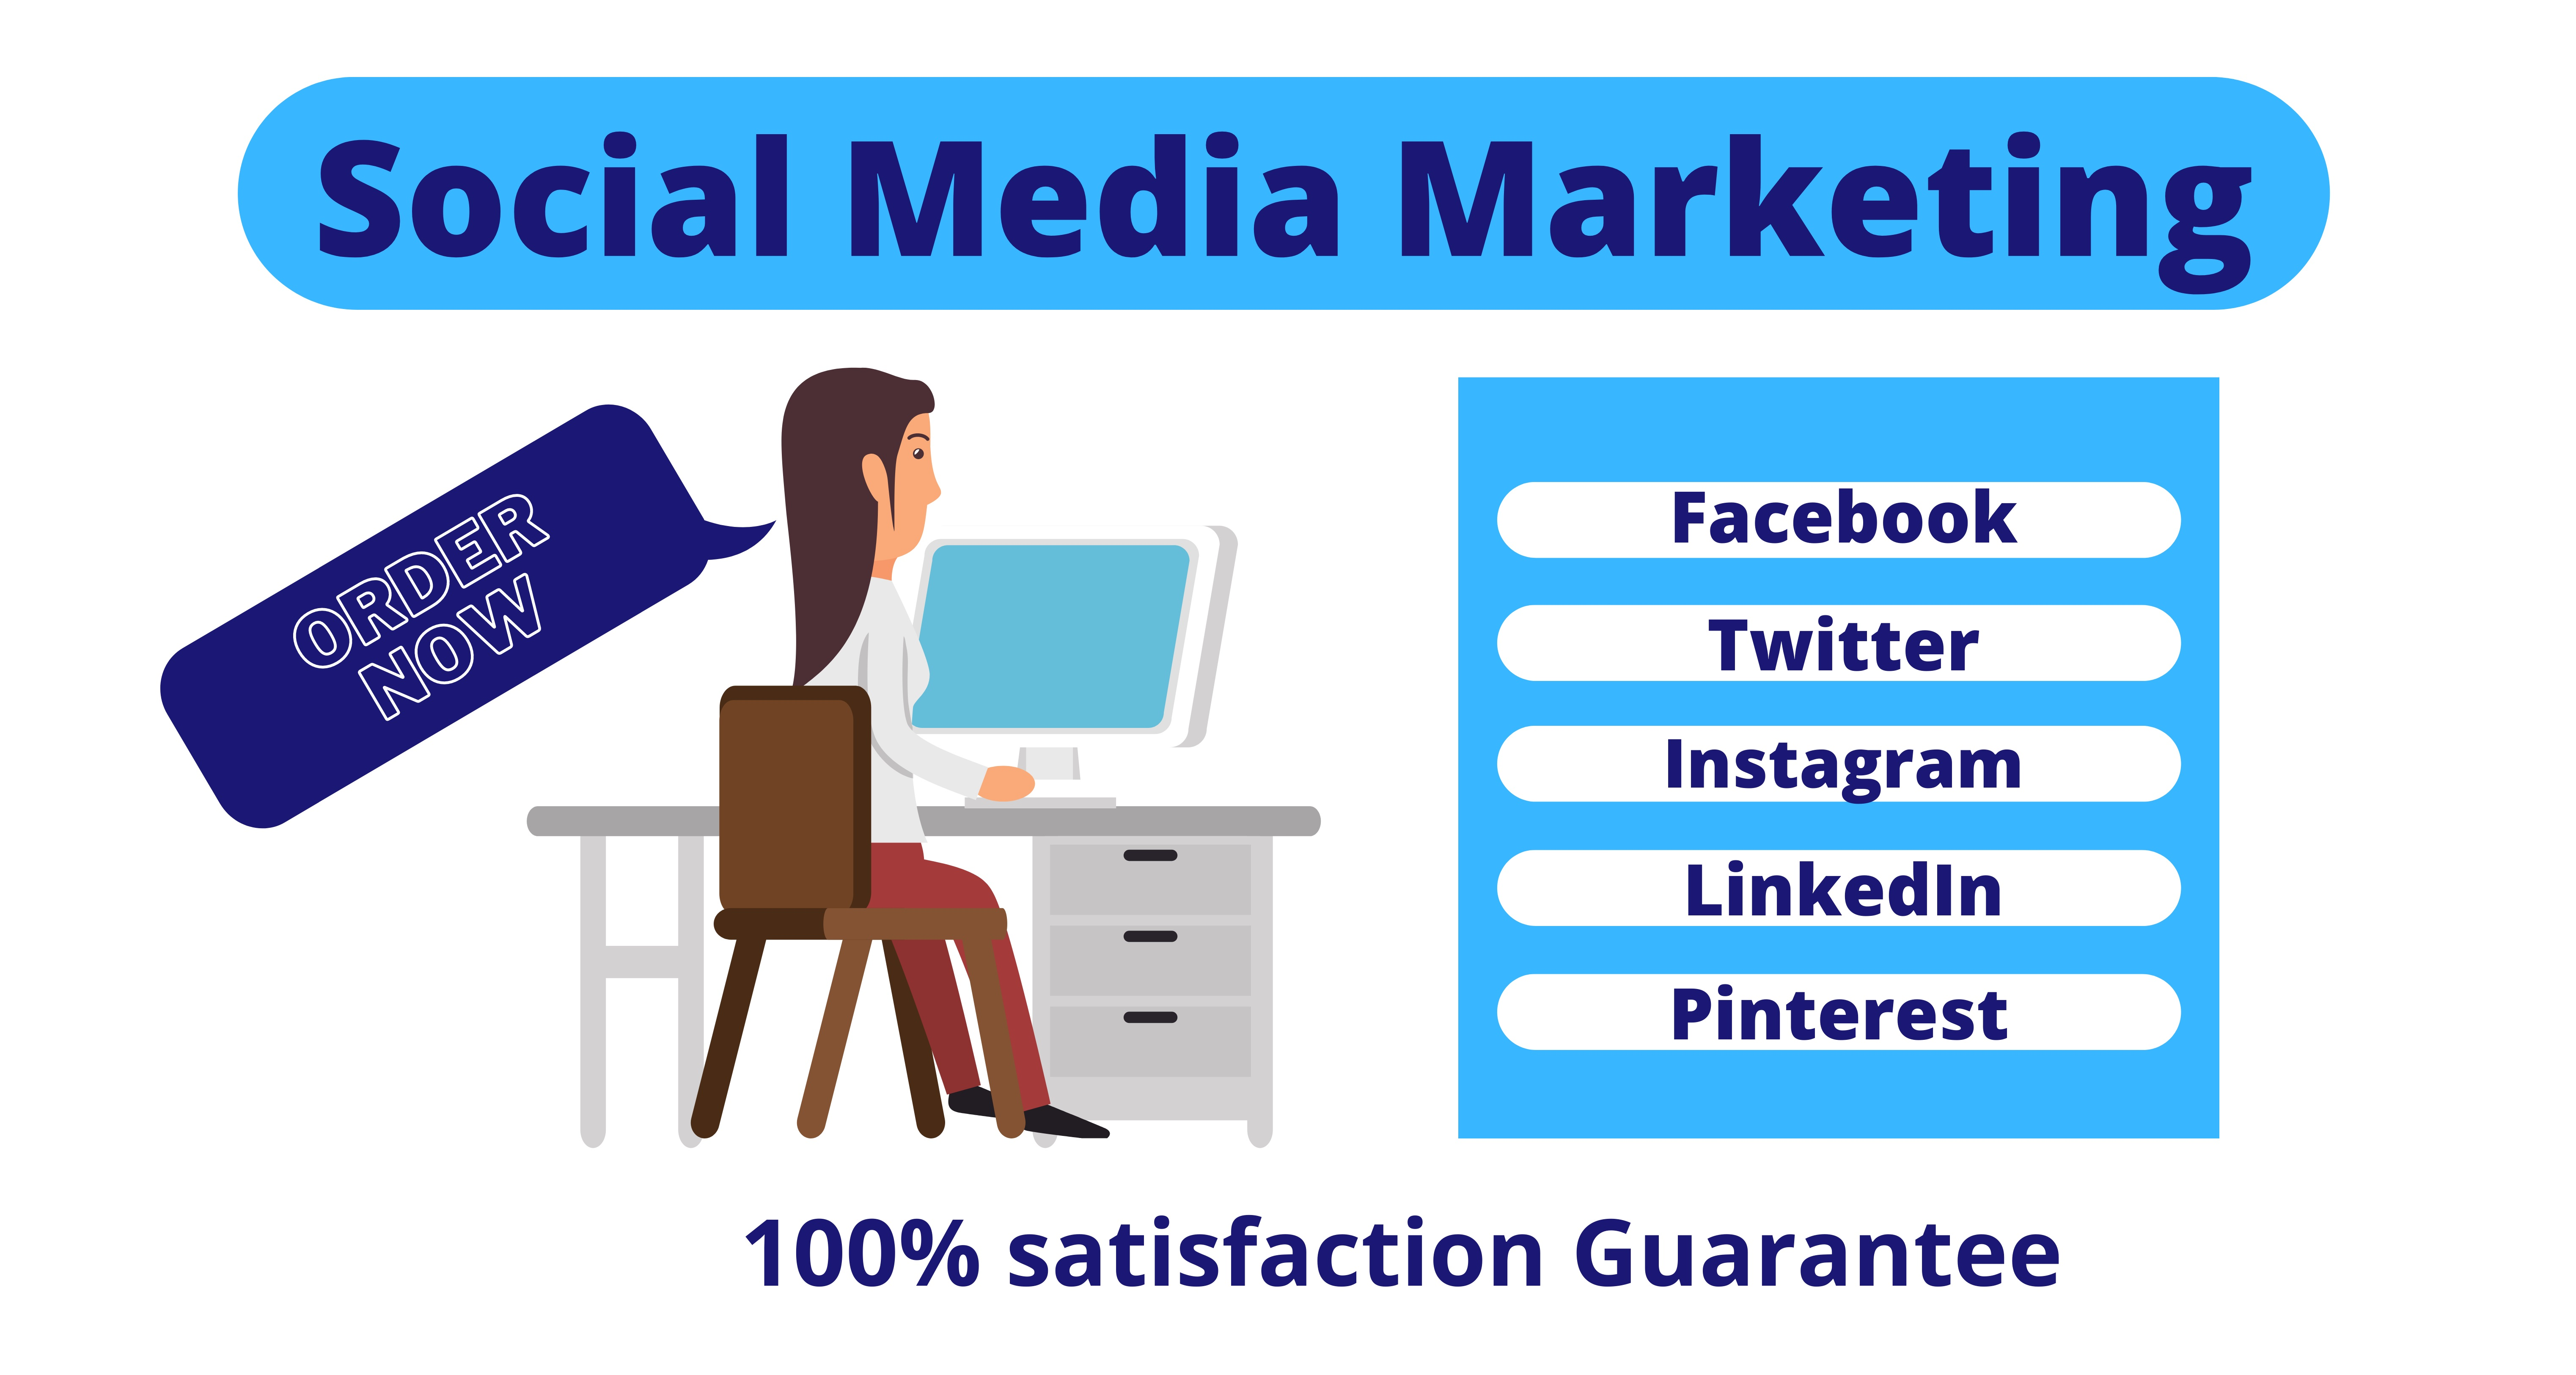 I will be your Social Media Marketing Manager and Virtual Assistant